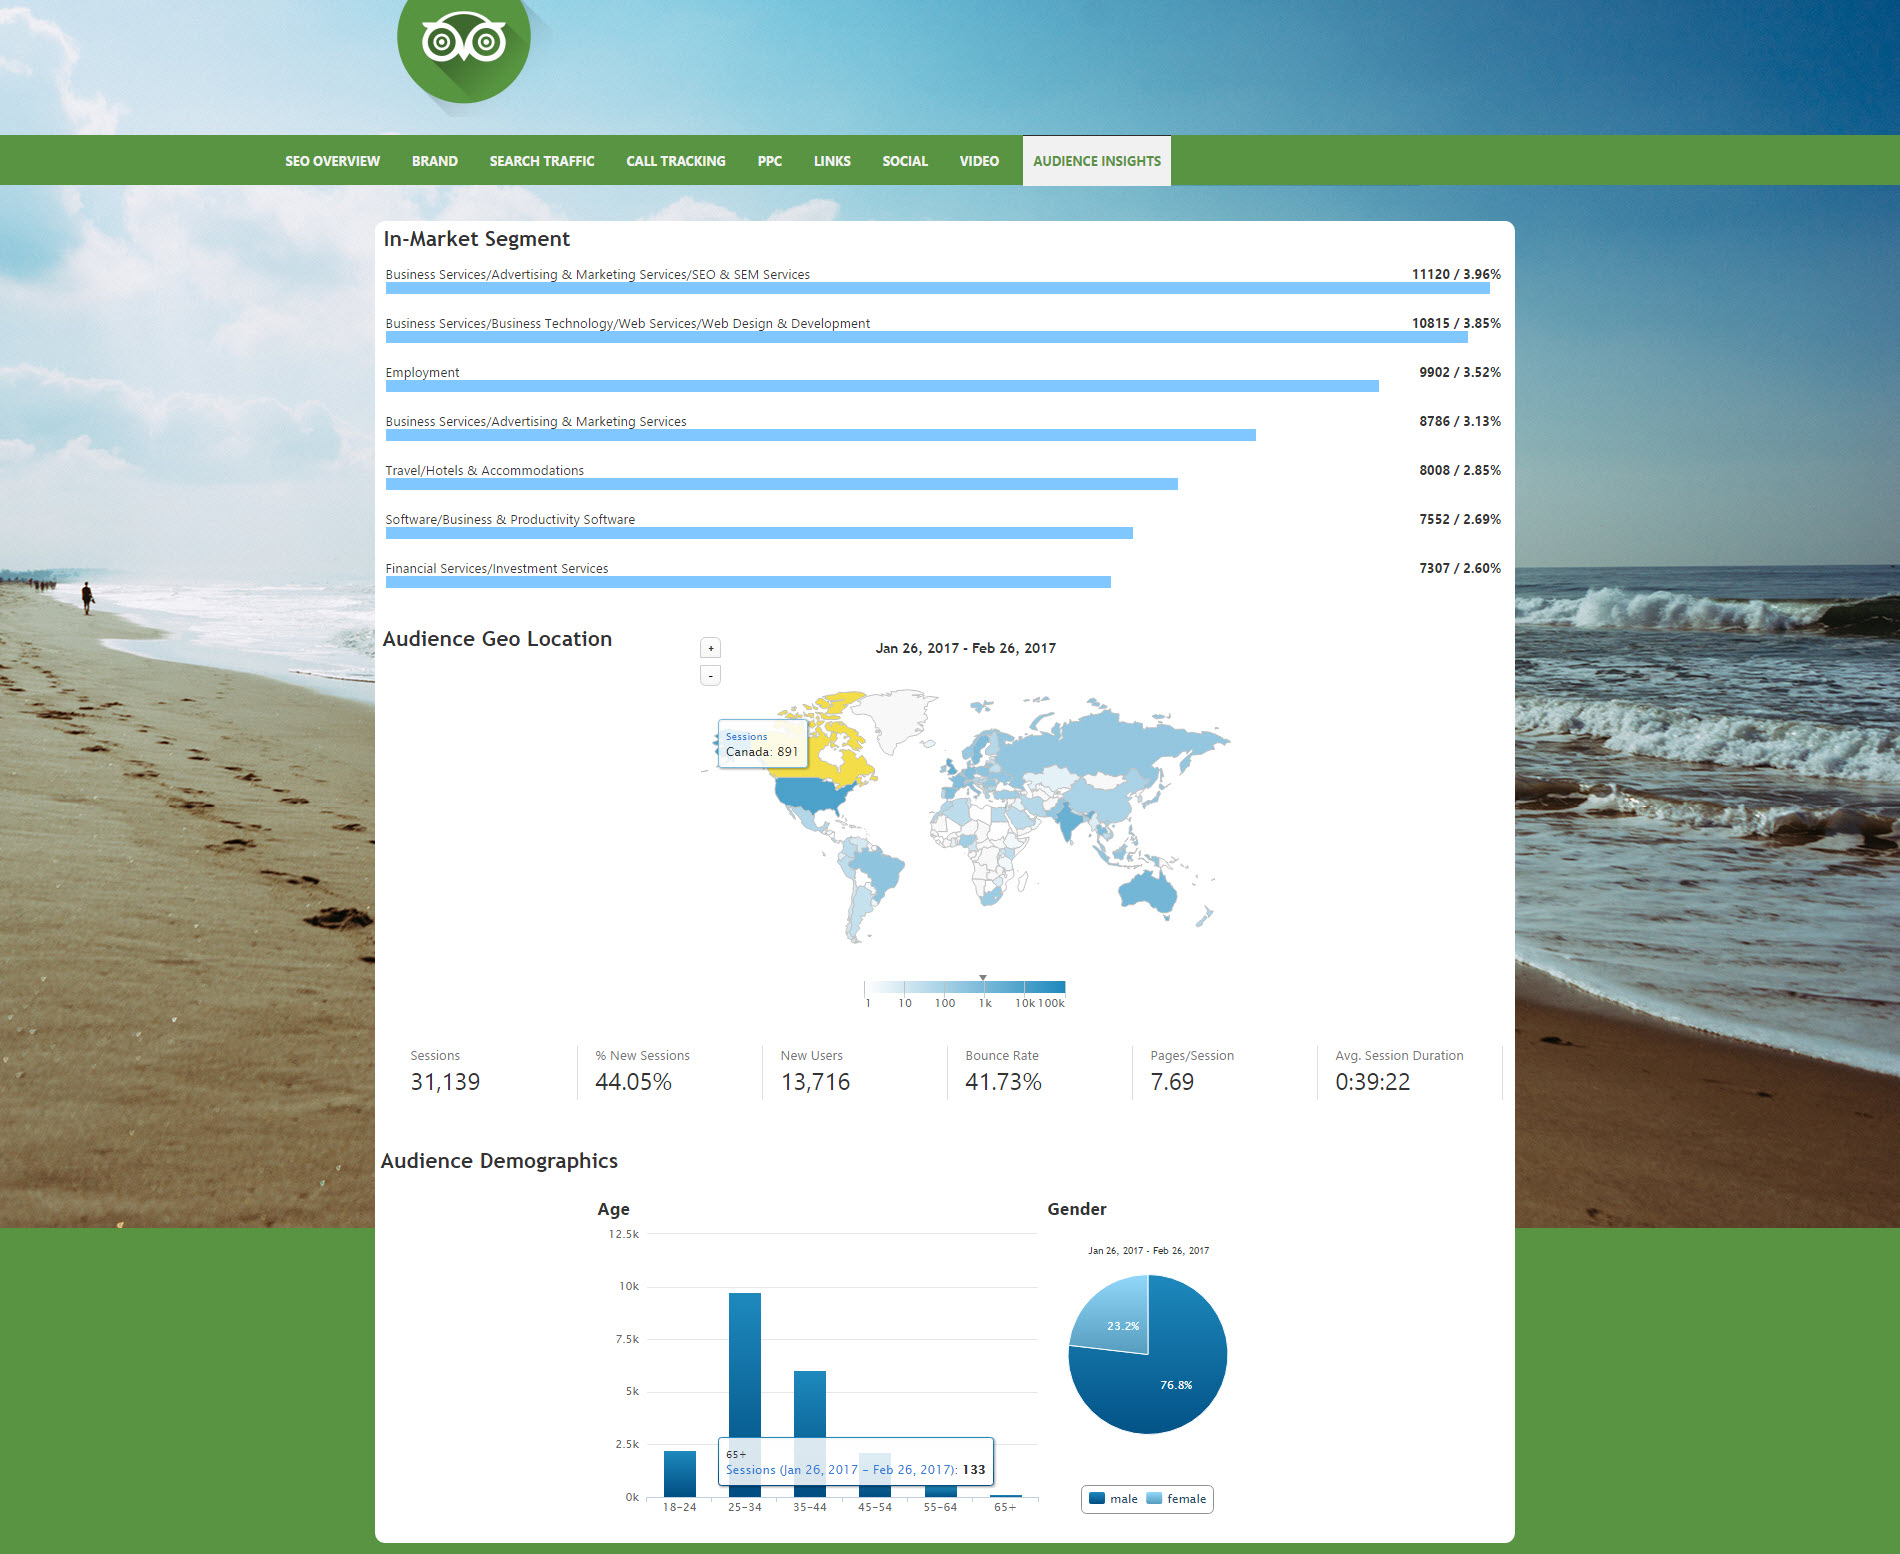 White Label Dashboard - Audience Insights